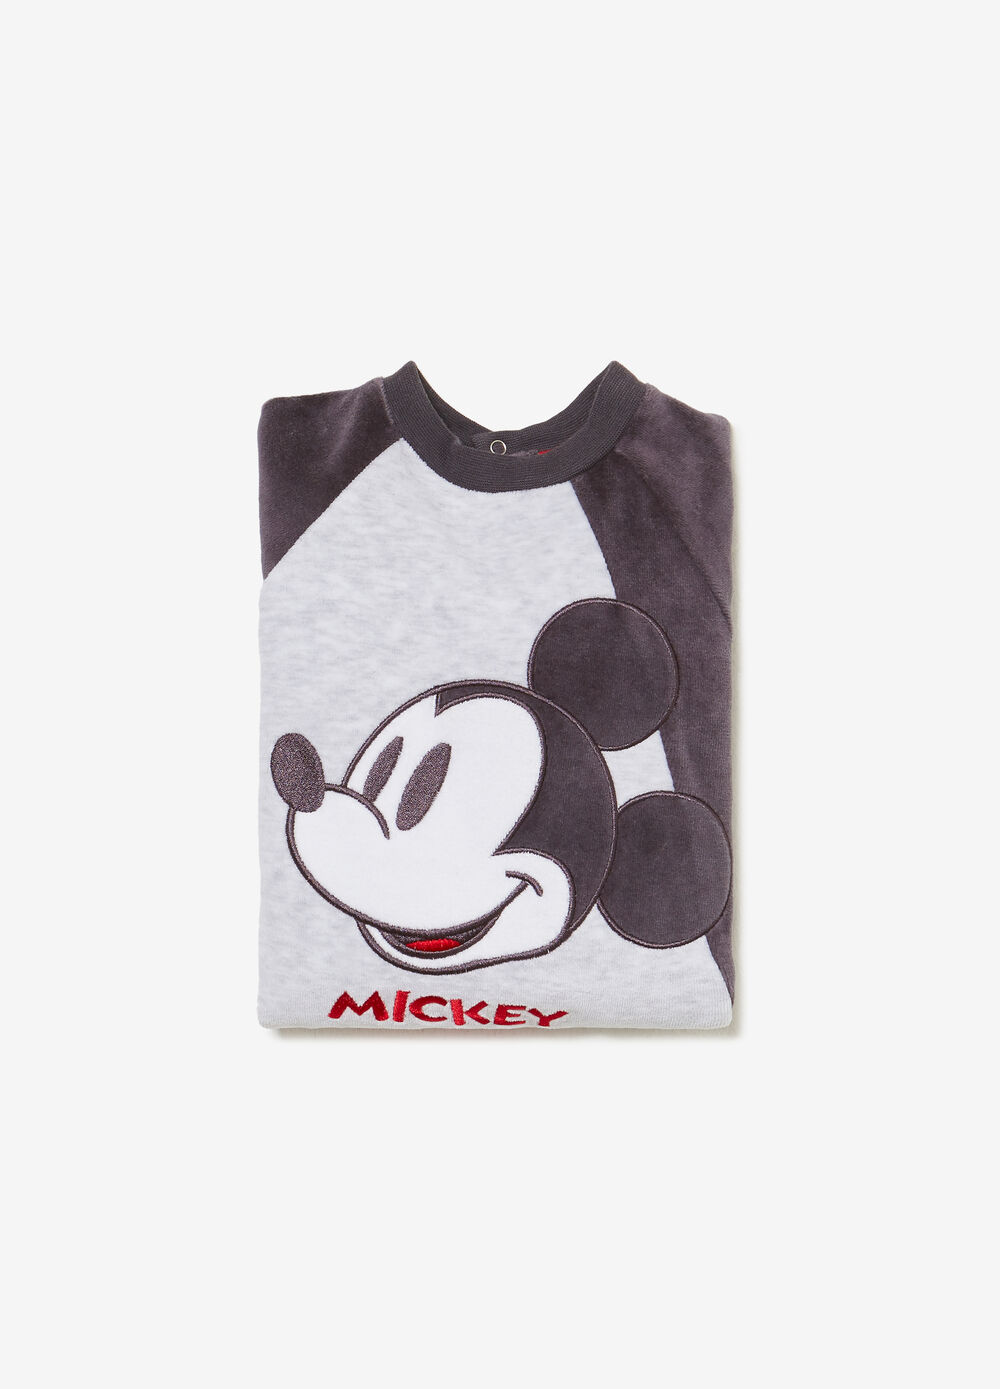 Mickey Mouse BCI sleepsuit